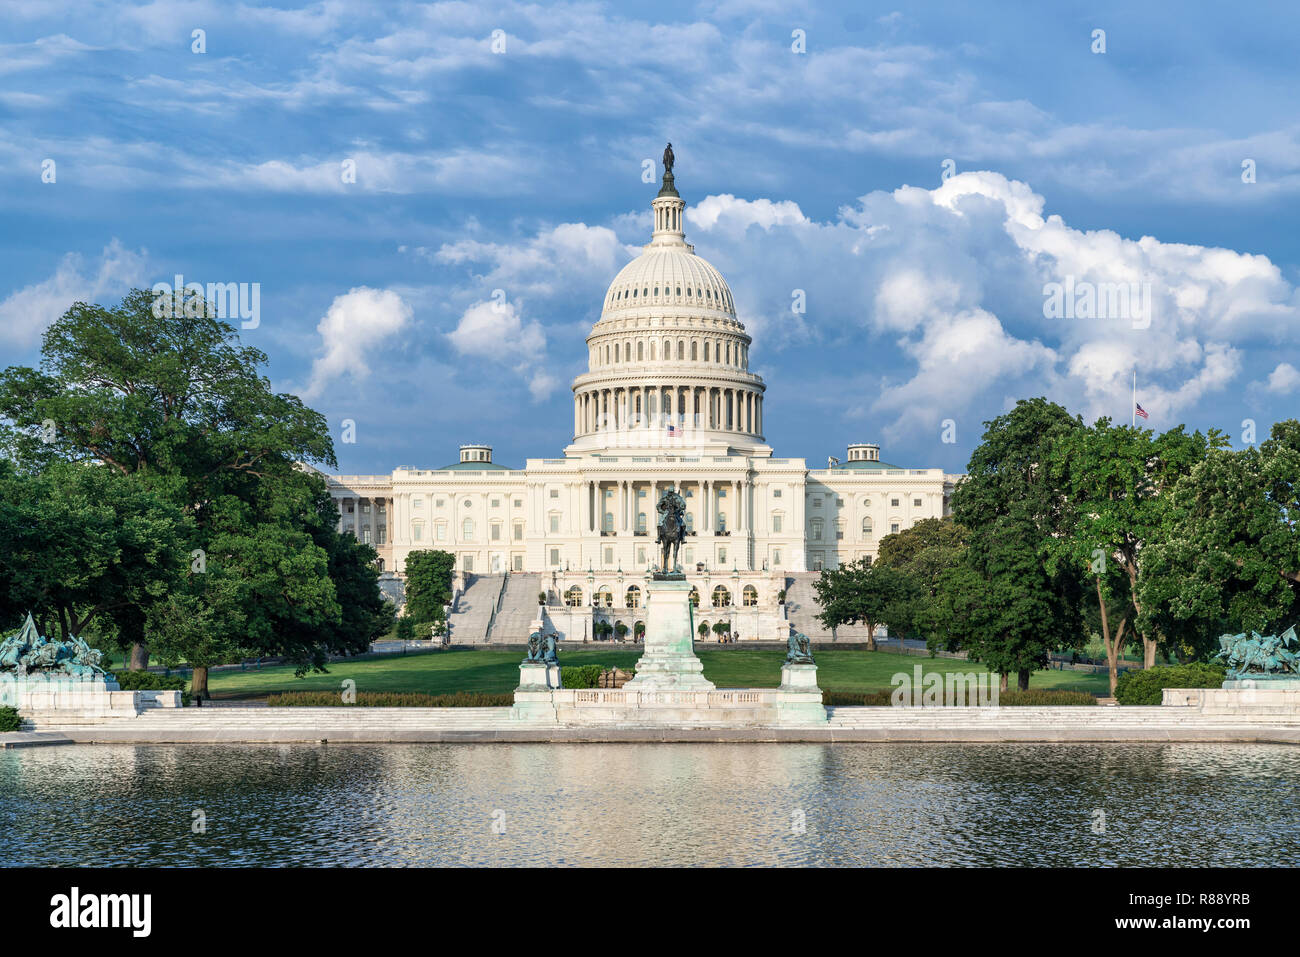 Reflecting pool, Ulysses S. Grant Memorial and US Capitol Building, Washington D.C., USA. Stock Photo